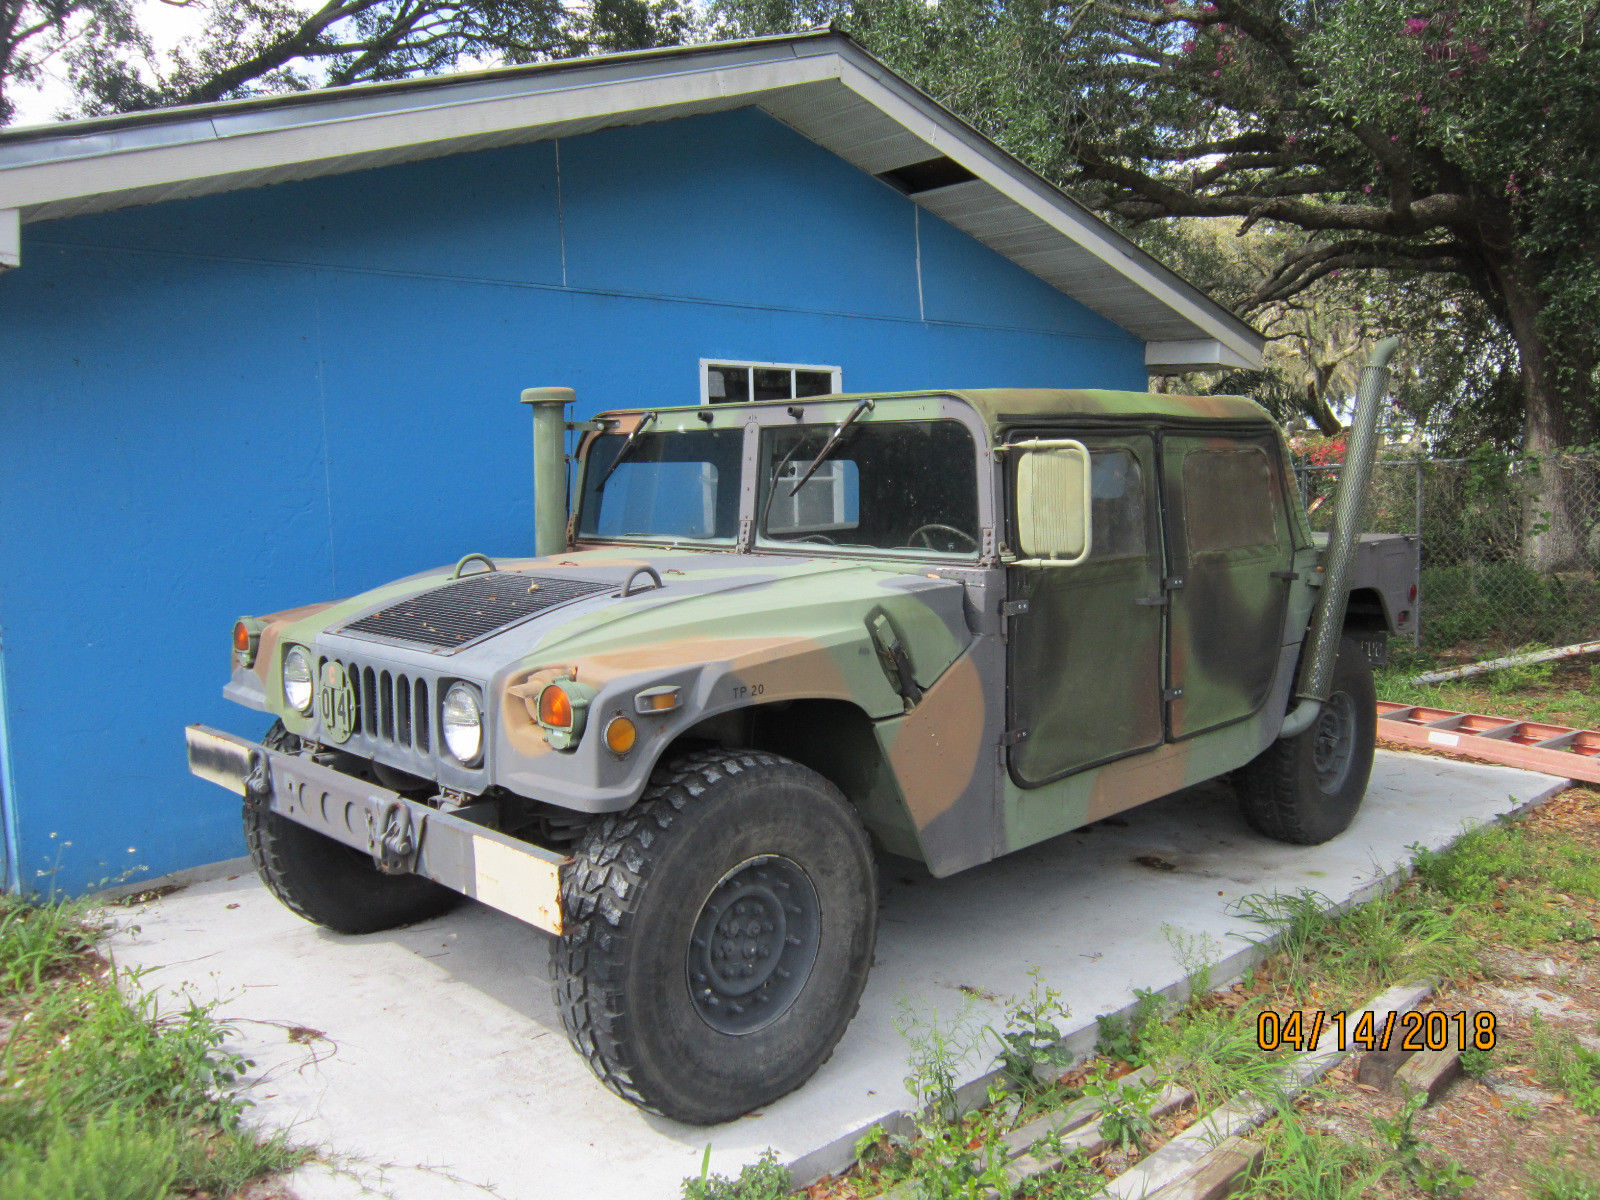 Awesome military hummer humvee h11 m11 am general 11 door 1111k miles street  title 20118-20119 | military h1 hummer